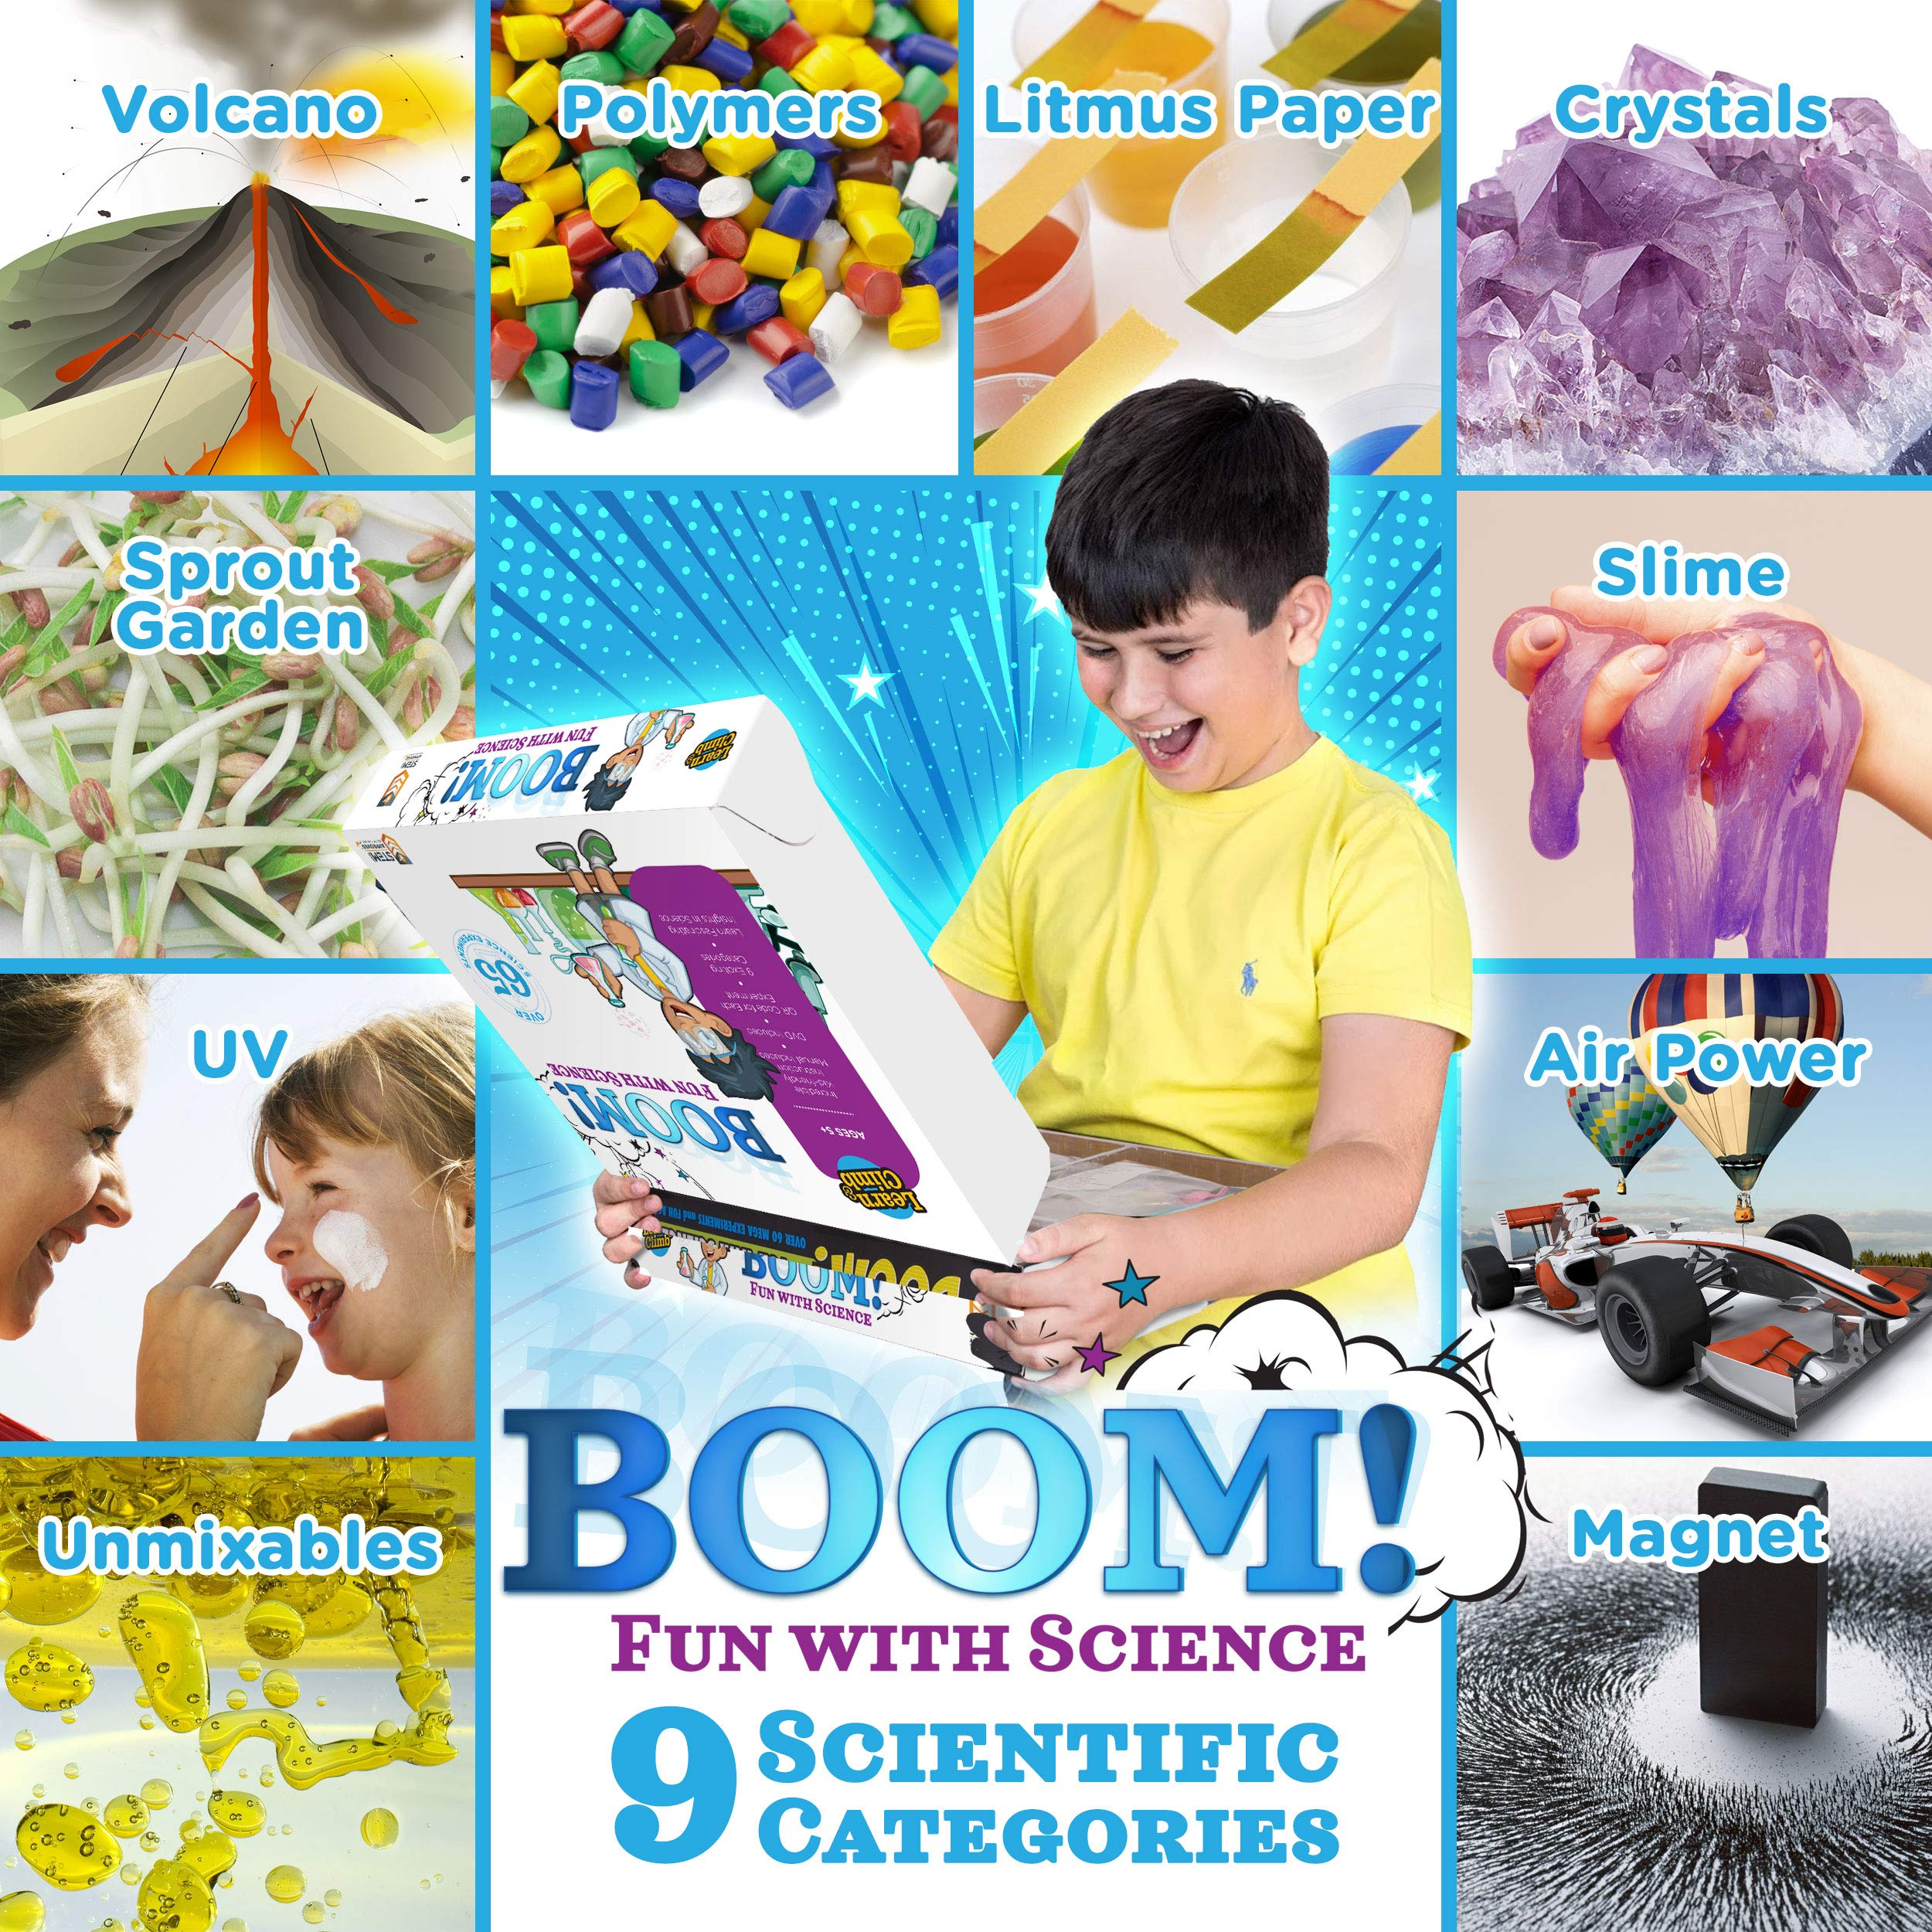 Learn & Climb Kids Science Kit - Over 60 Experiments, Fun with Science! by Learn & Climb (Image #2)